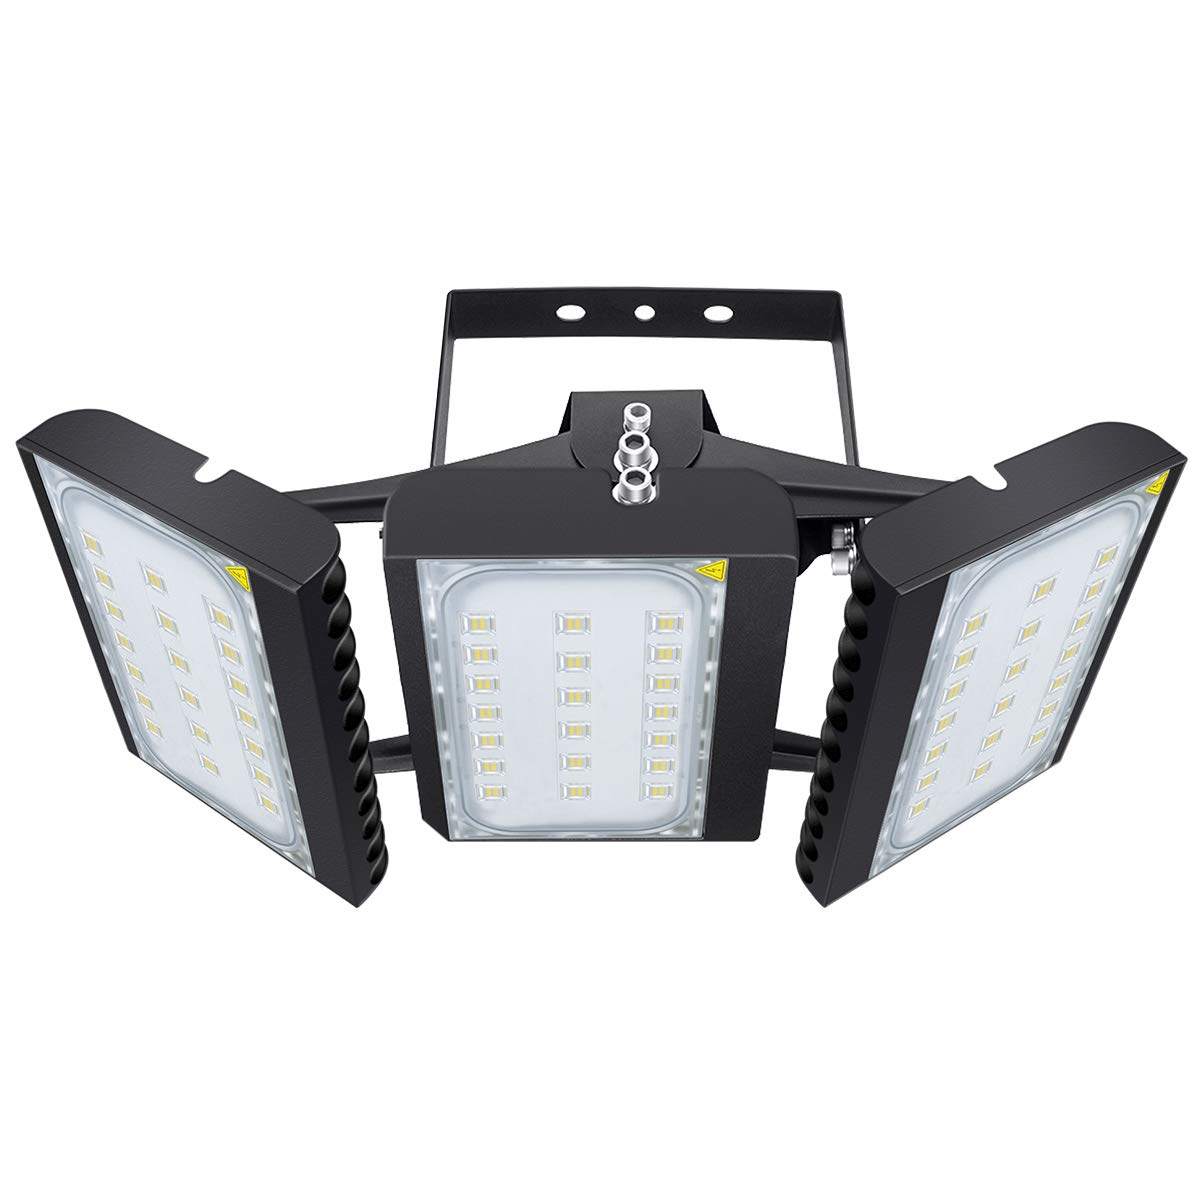 LED Flood Light Outdoor, STASUN 450W 40500lm LED Security Lights with 330°Wide Lighting Area, 6000K Daylight, OSRAM LED Chips, Adjustable Heads, Waterproof, Great for Yard, Street, Parking Lot